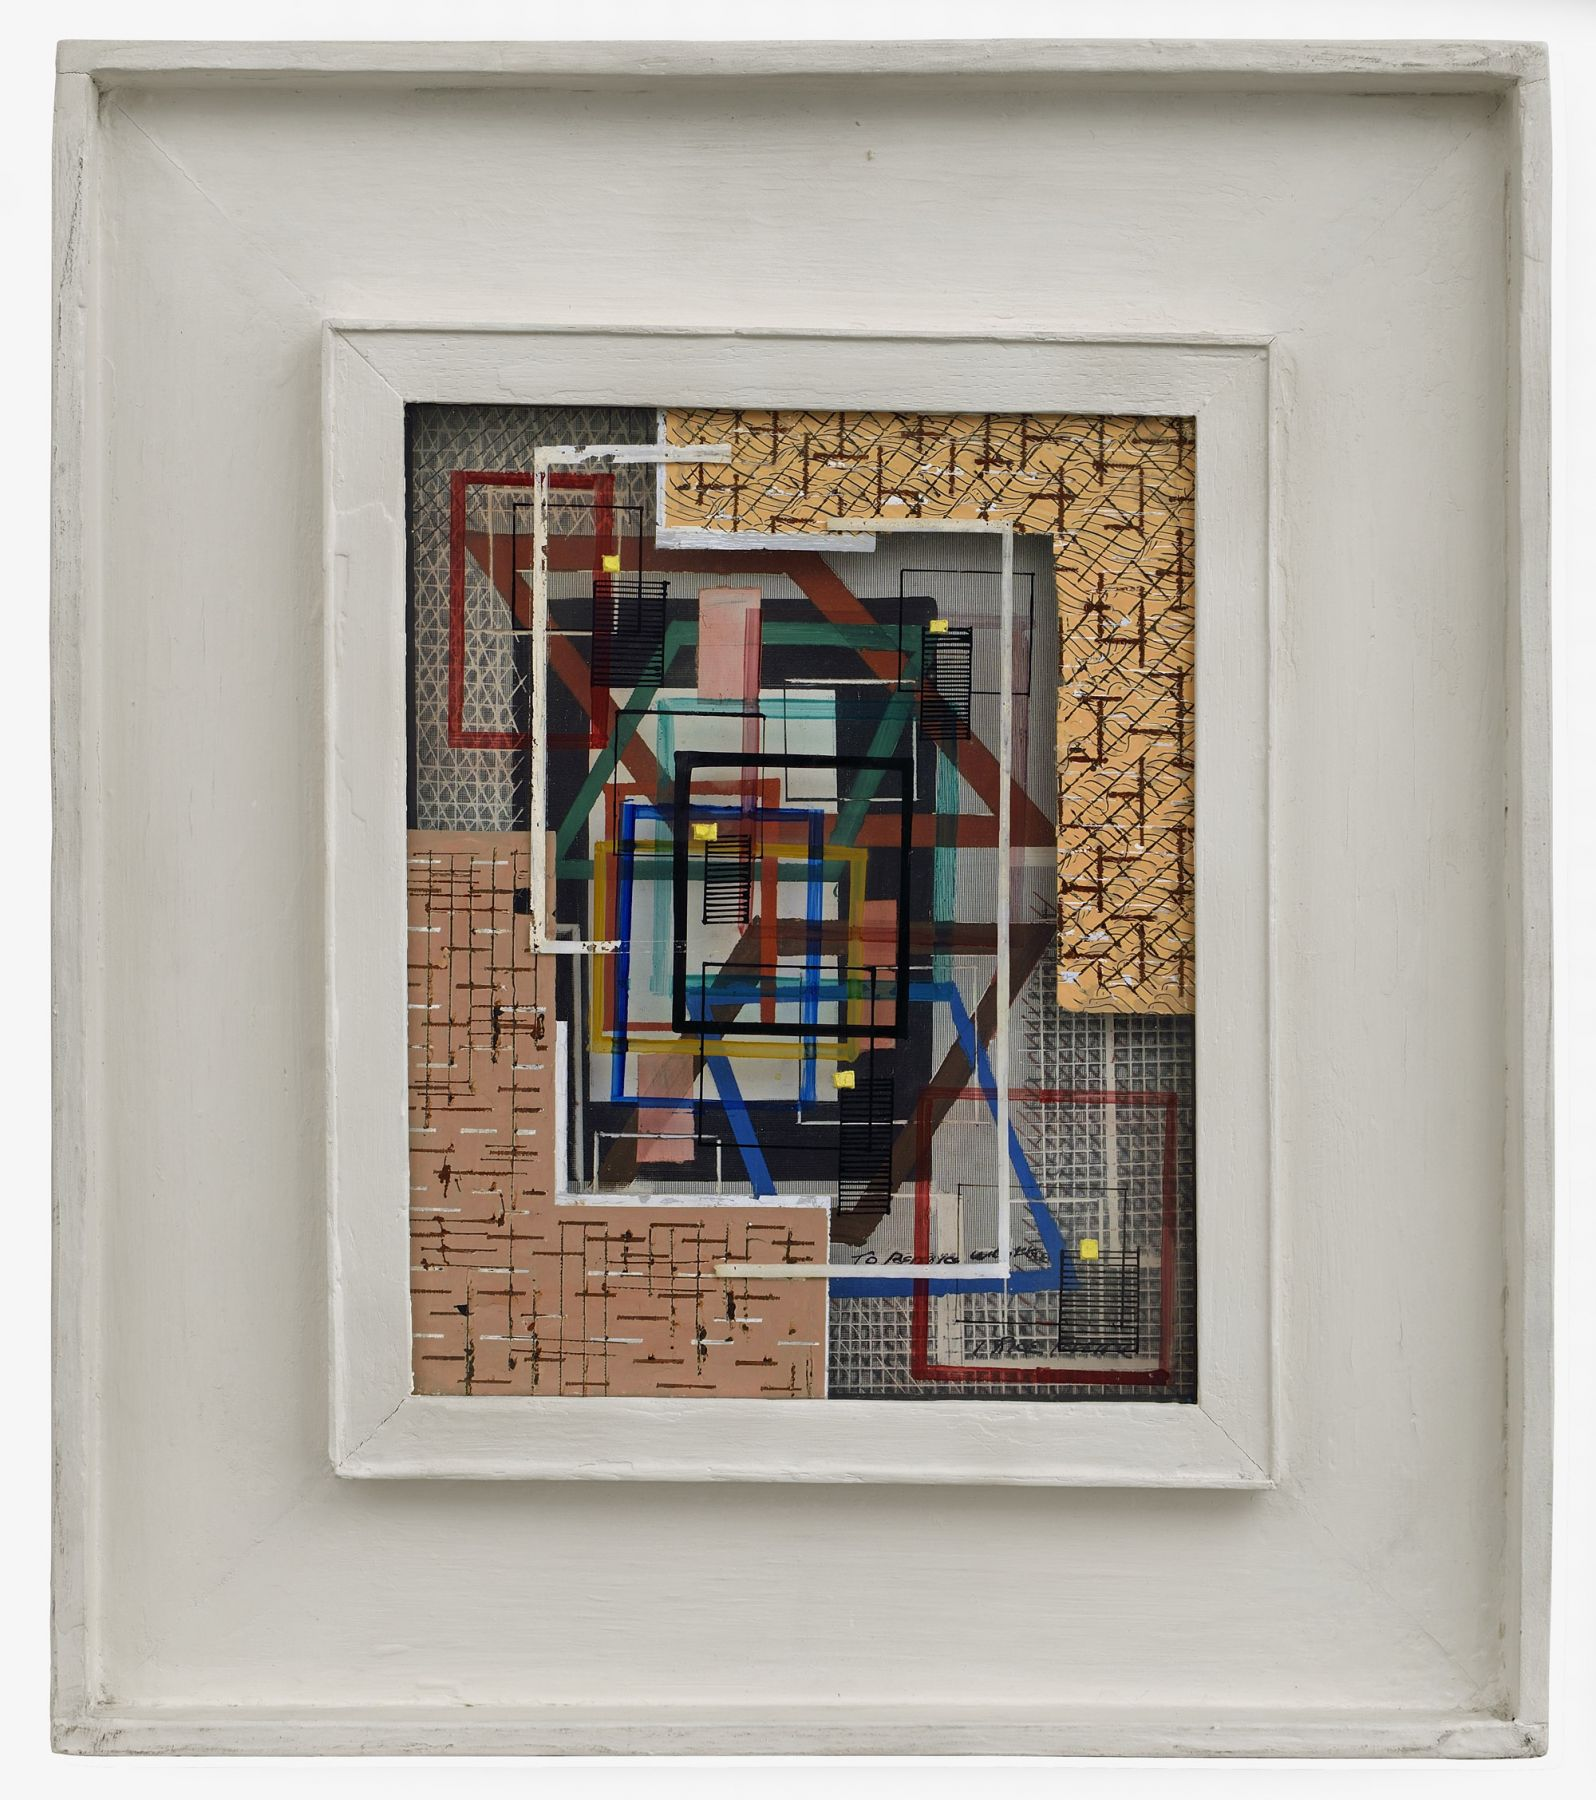 irene rice pereira, Three Dimensional Abstract Composition, c. 1945 painted glass and board construction  9 1/4 x 7 1/4 x 1/8 inches  artist's shadow box frame: 16 x 14 x 1 3/8 inches